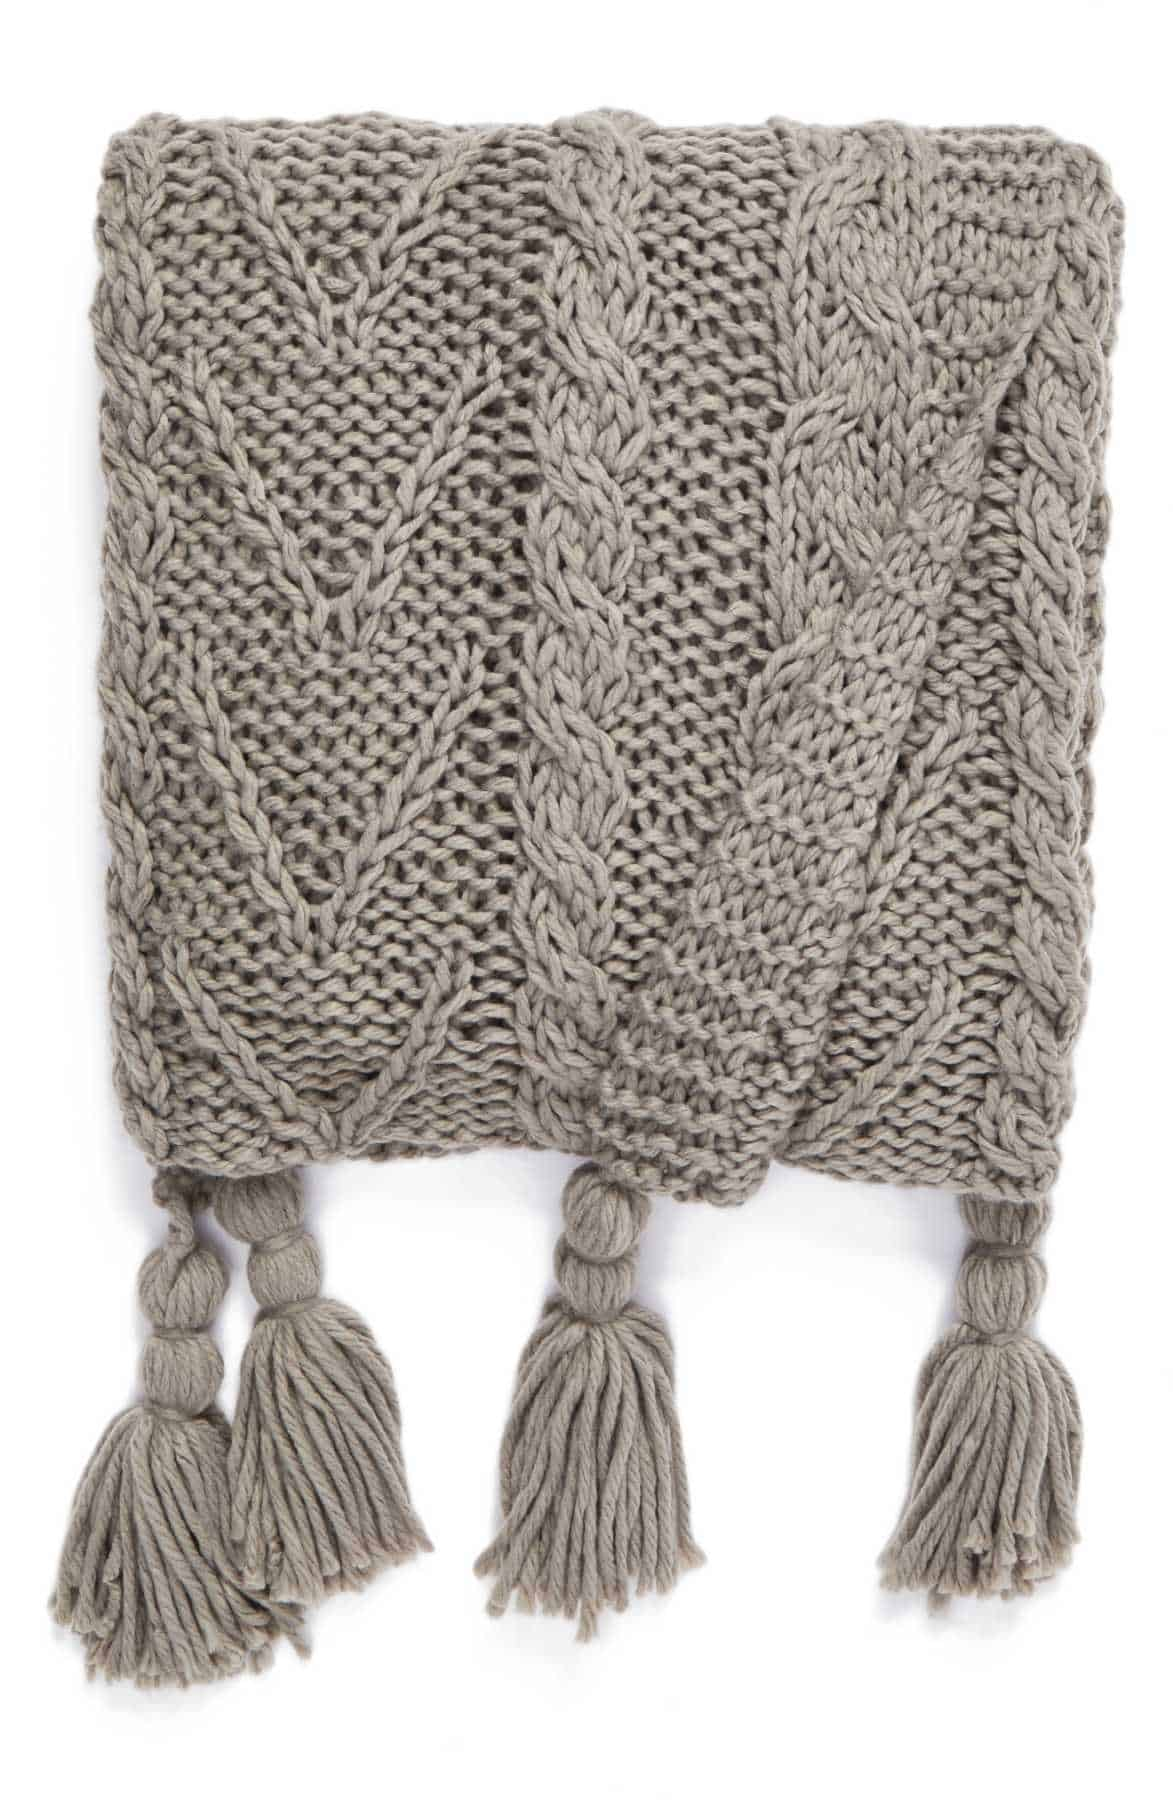 This cable knit tassel throw is great for the couch on cool Fall days!